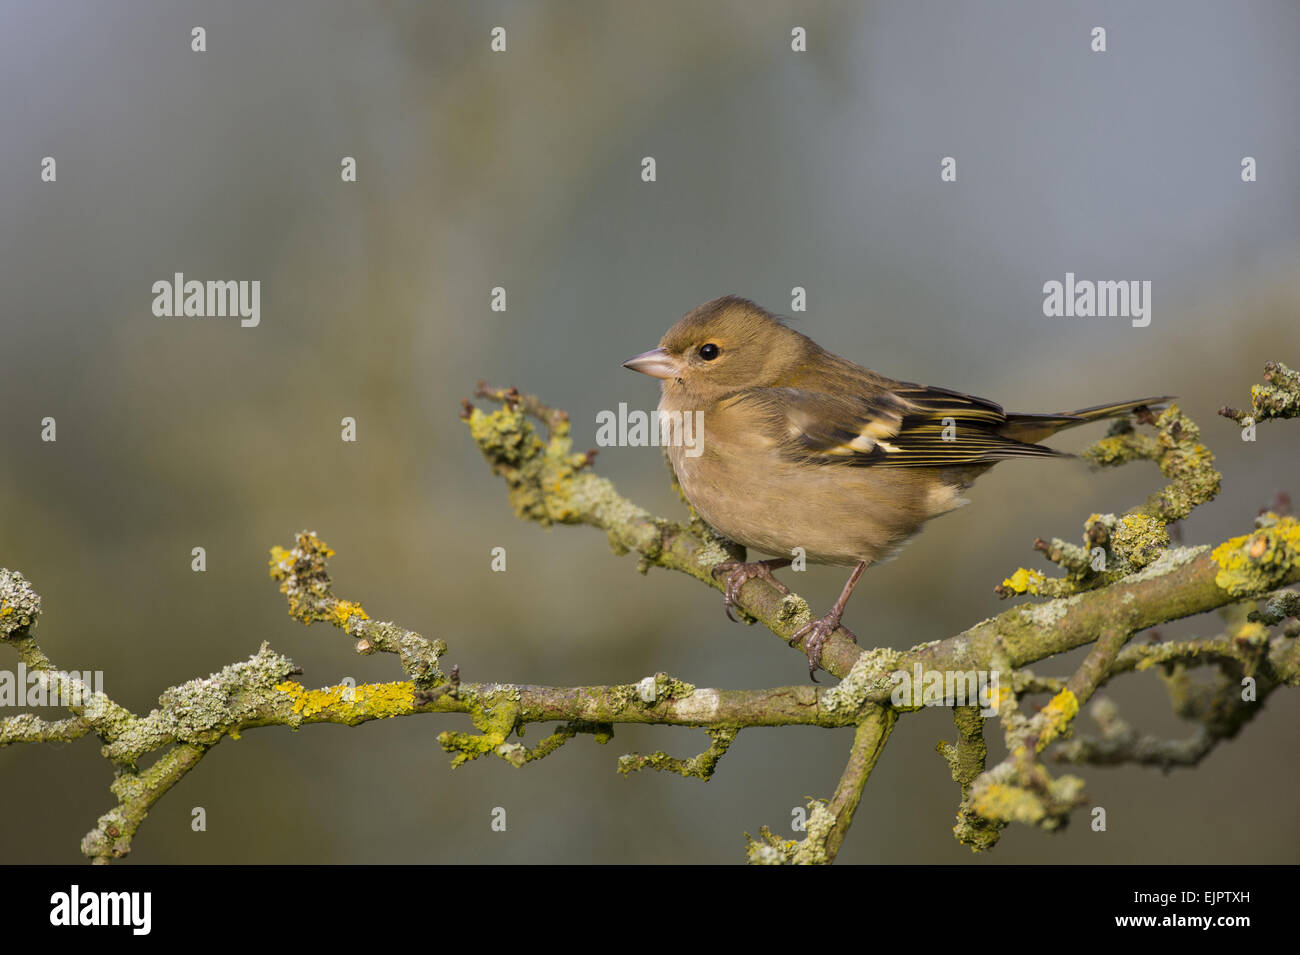 Common Chaffinch (Fringilla coelebs) adult female, perched on lichen covered twig, Norfolk, England, January - Stock Image